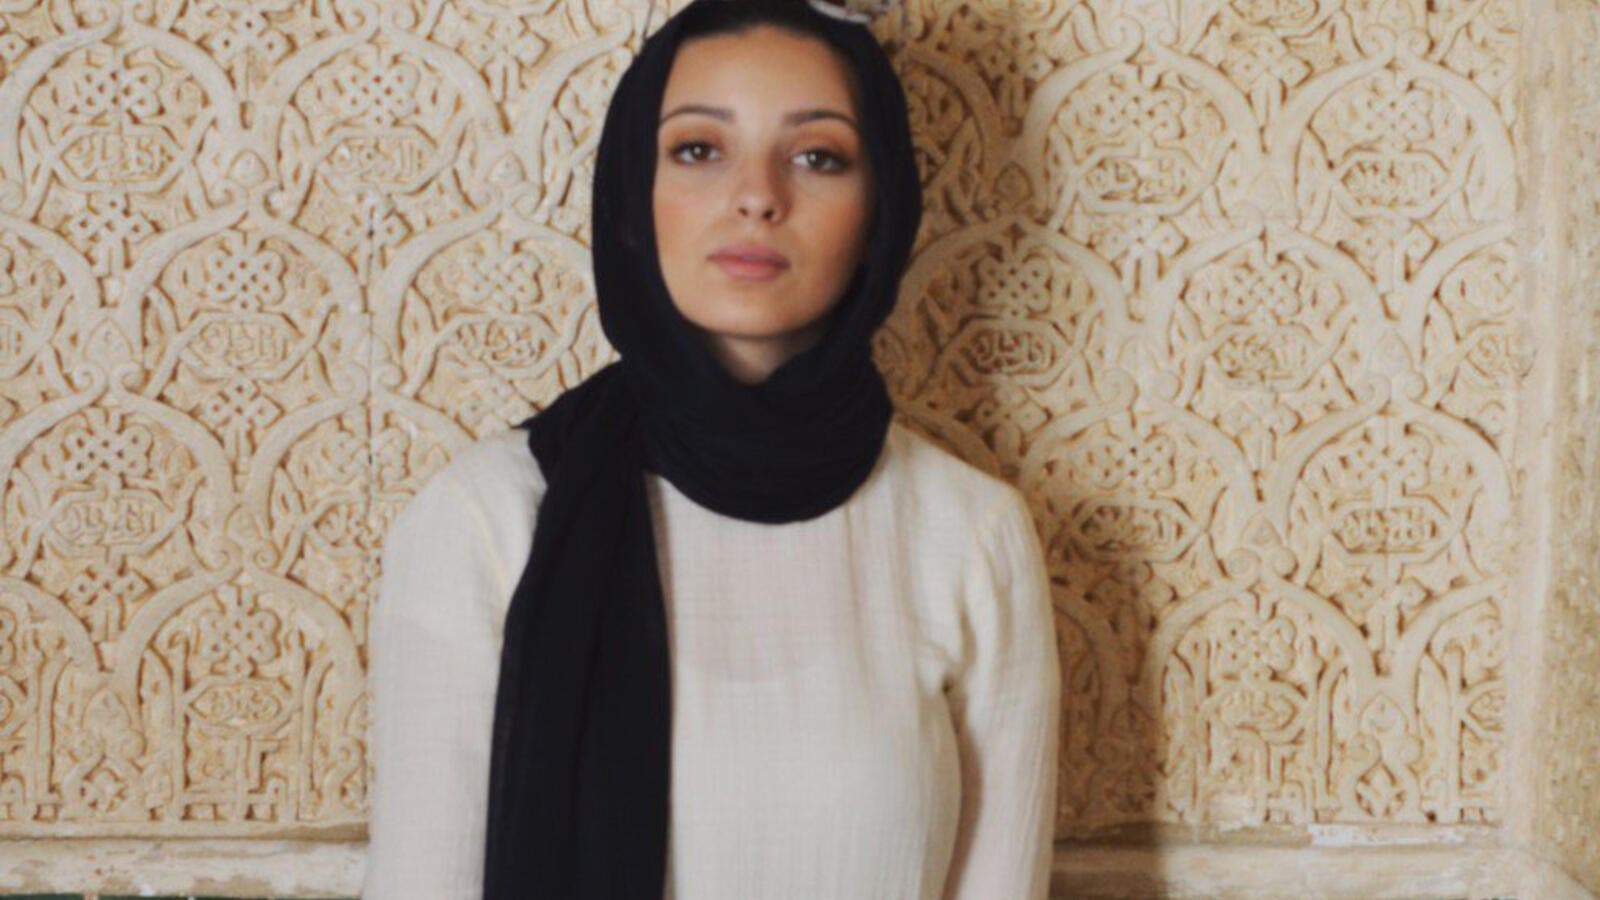 Noor Tagouri has received wide recognition for aspiring to be the first anchor to wear the hijab in the US, from collaborating on clothing lines to giving TEDx talks. (Twitter)